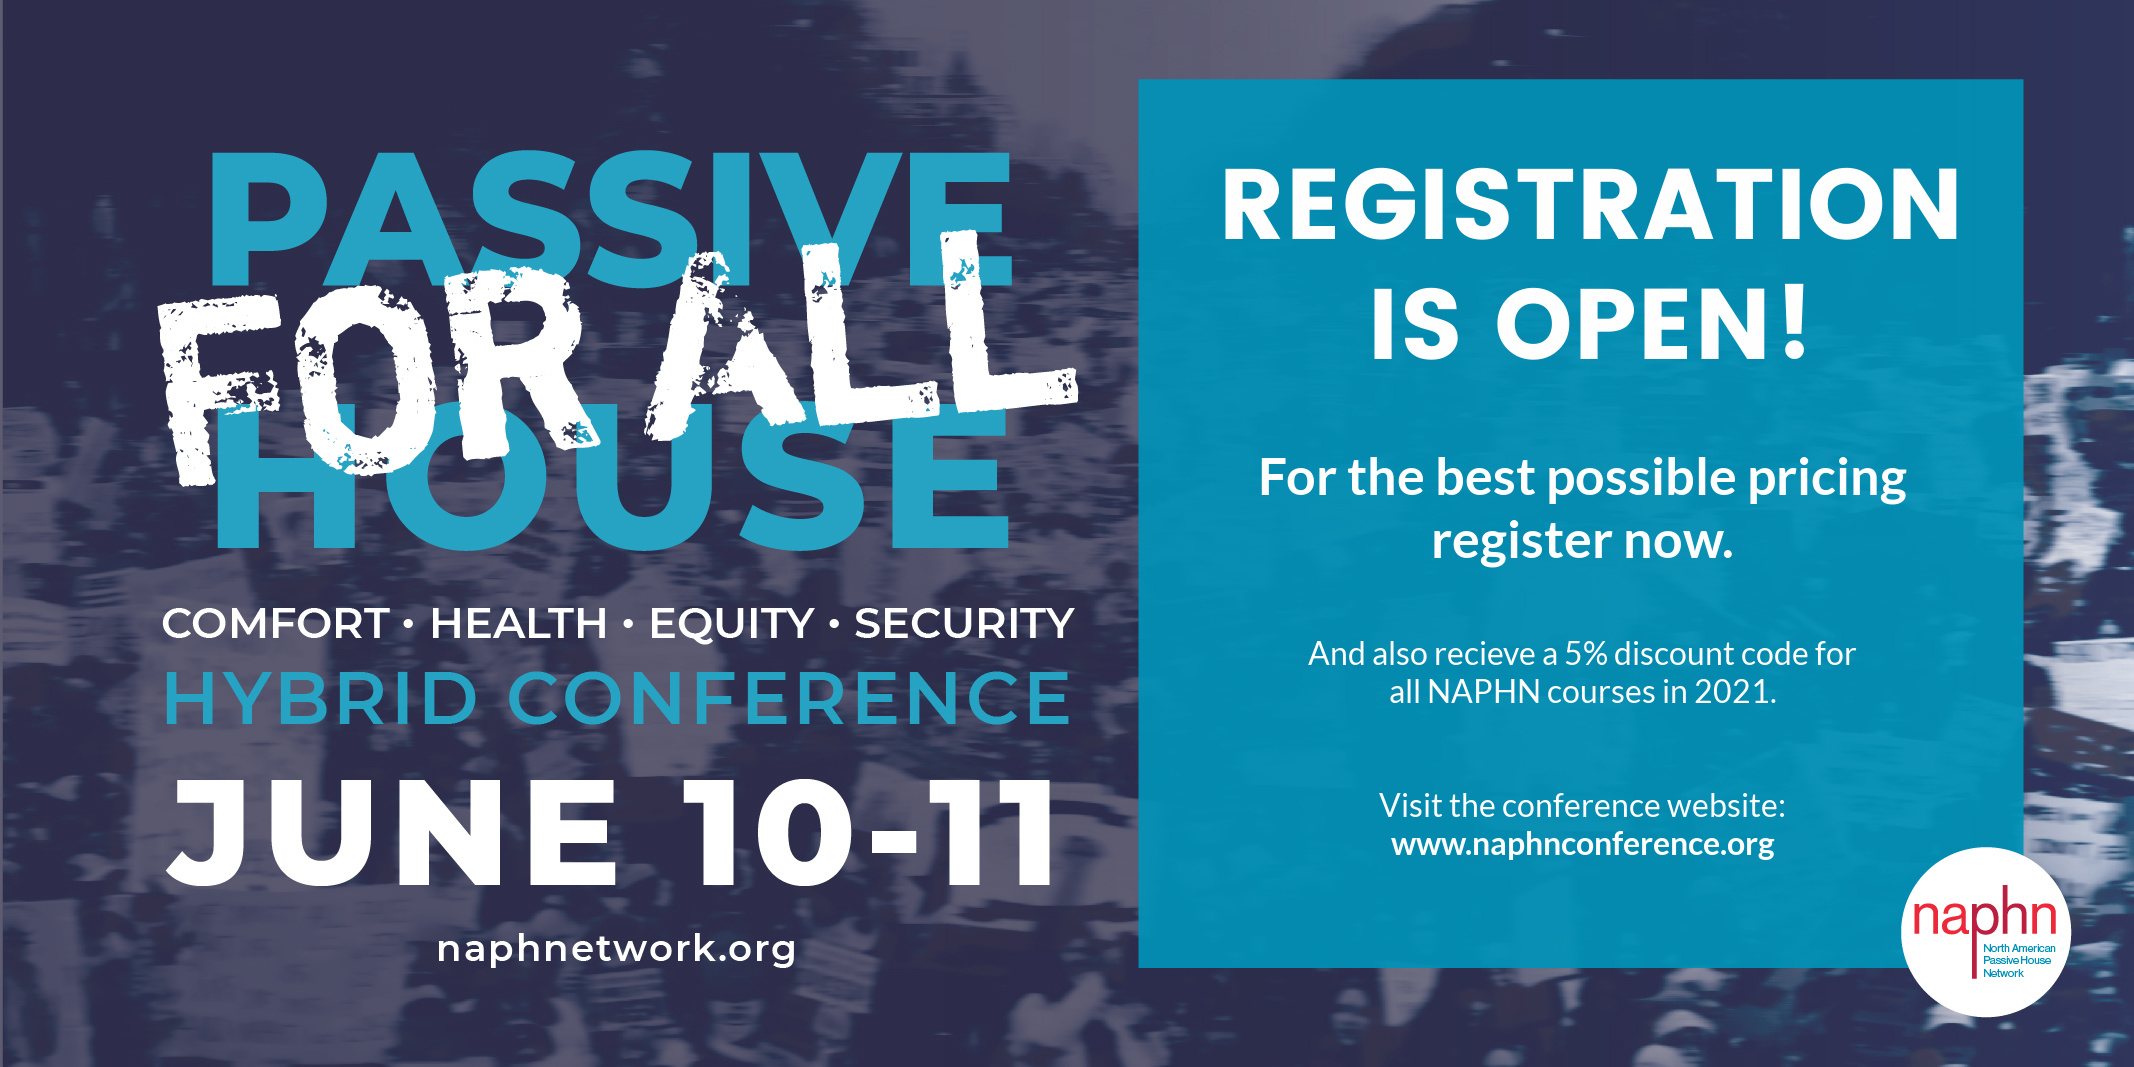 Passive House for All Conference Registration is Open